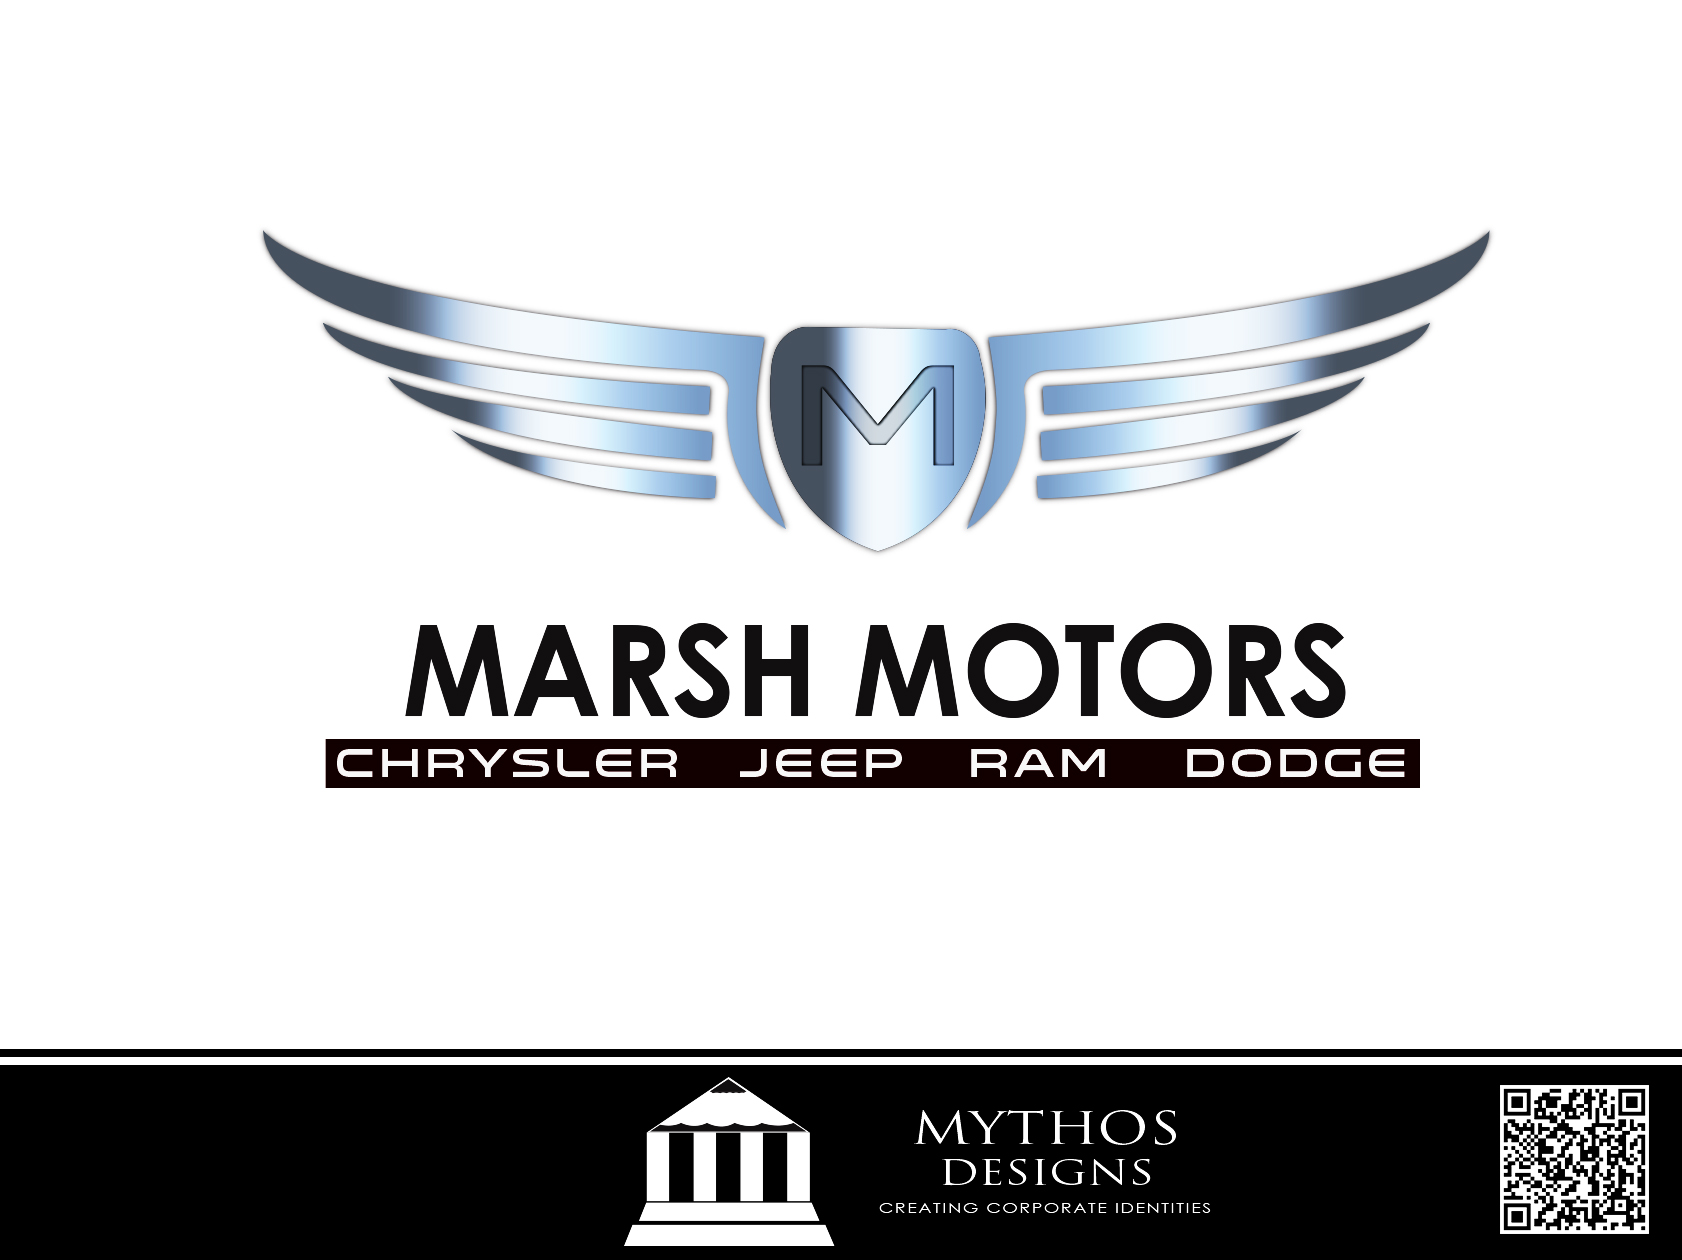 Logo Design by Mythos Designs - Entry No. 57 in the Logo Design Contest Marsh Motors Chrysler Logo Design.